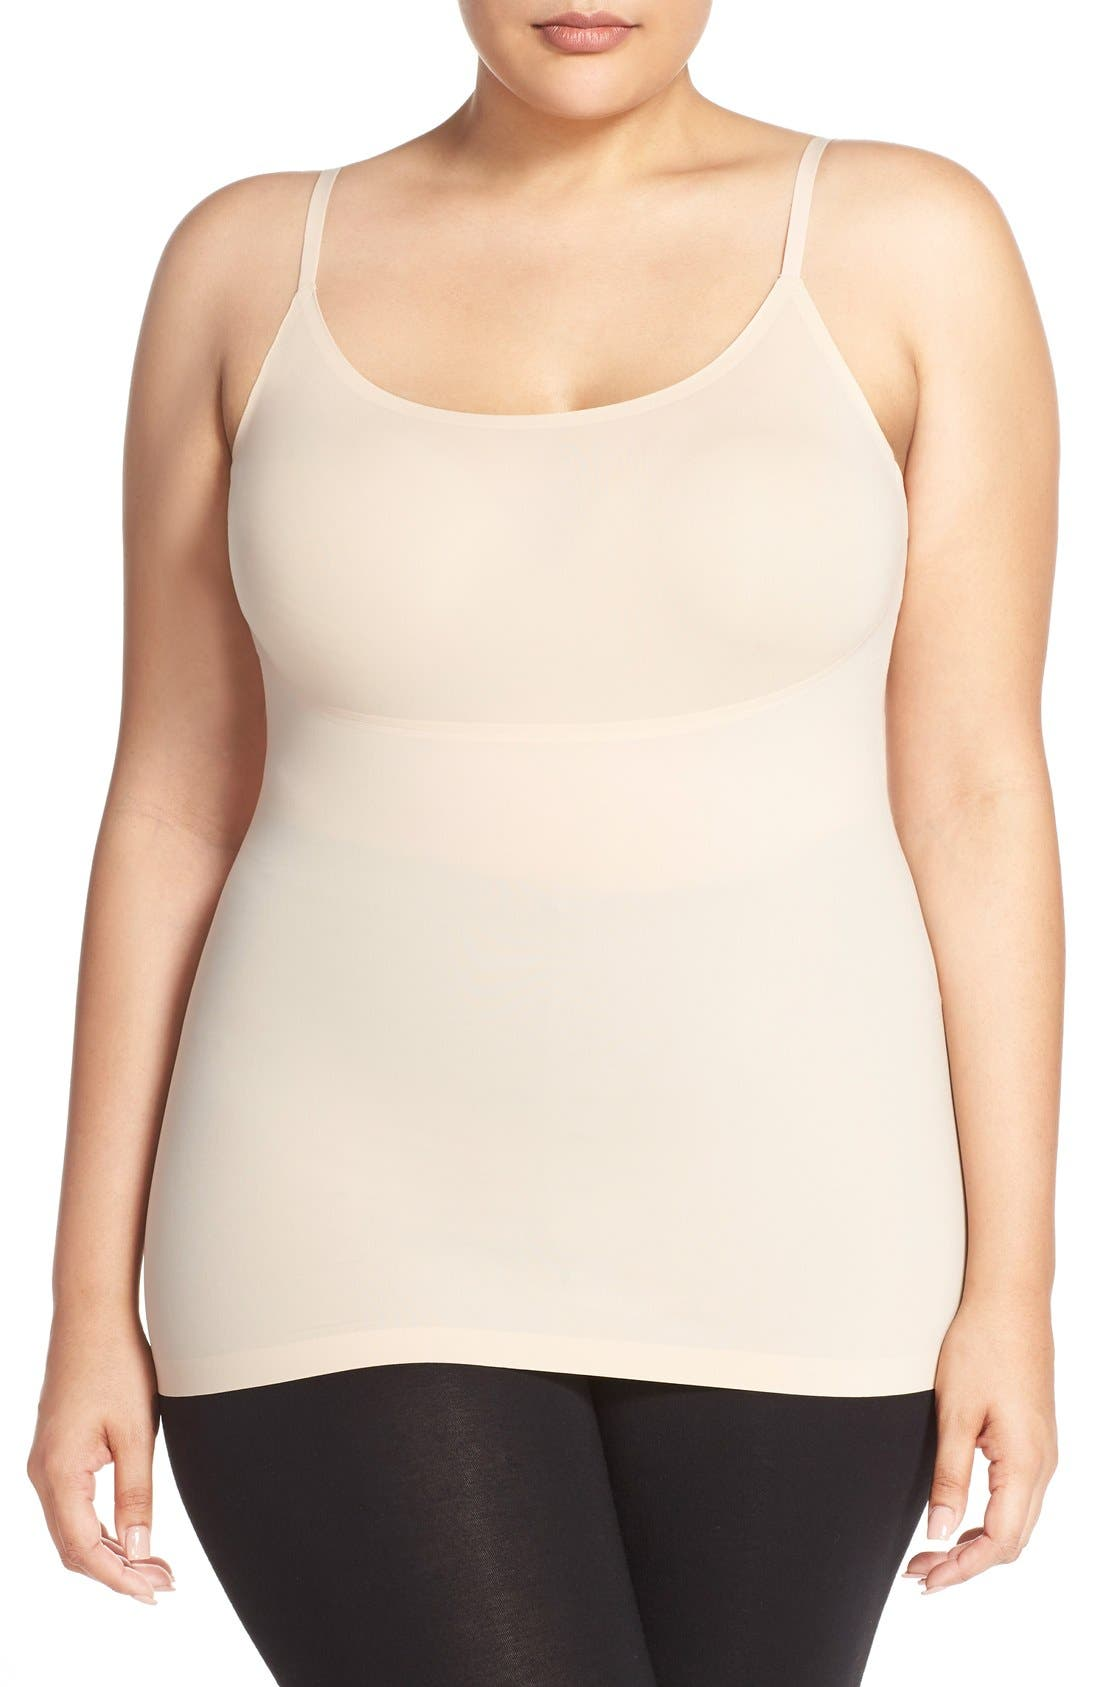 The best base layer is this smoothing, lightweight cami with added performance features like breathability, moisture-wicking comfort and absorbency. Style Name: Spanx Thinstincts Convertible Camisole (Plus Size). Style Number: 5145951. Available in stores.